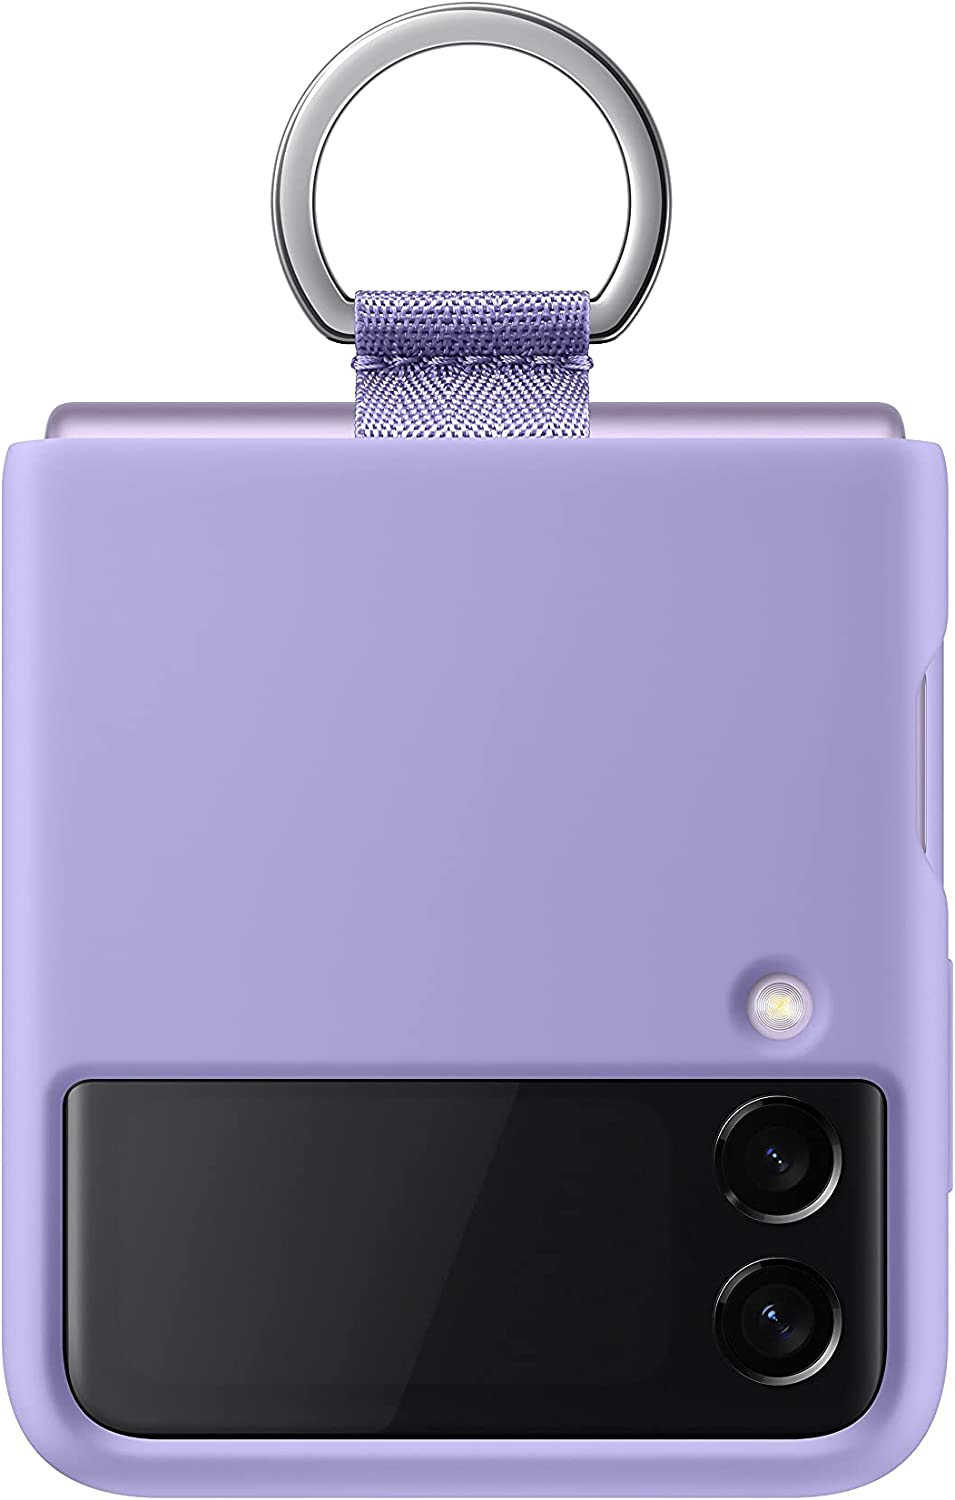 Samsung Galaxy Z Flip 3 Phone Case, Silicone Protective Cover with Ring, Heavy Duty, Shockproof Smartphone Protector, US Version, Lavender